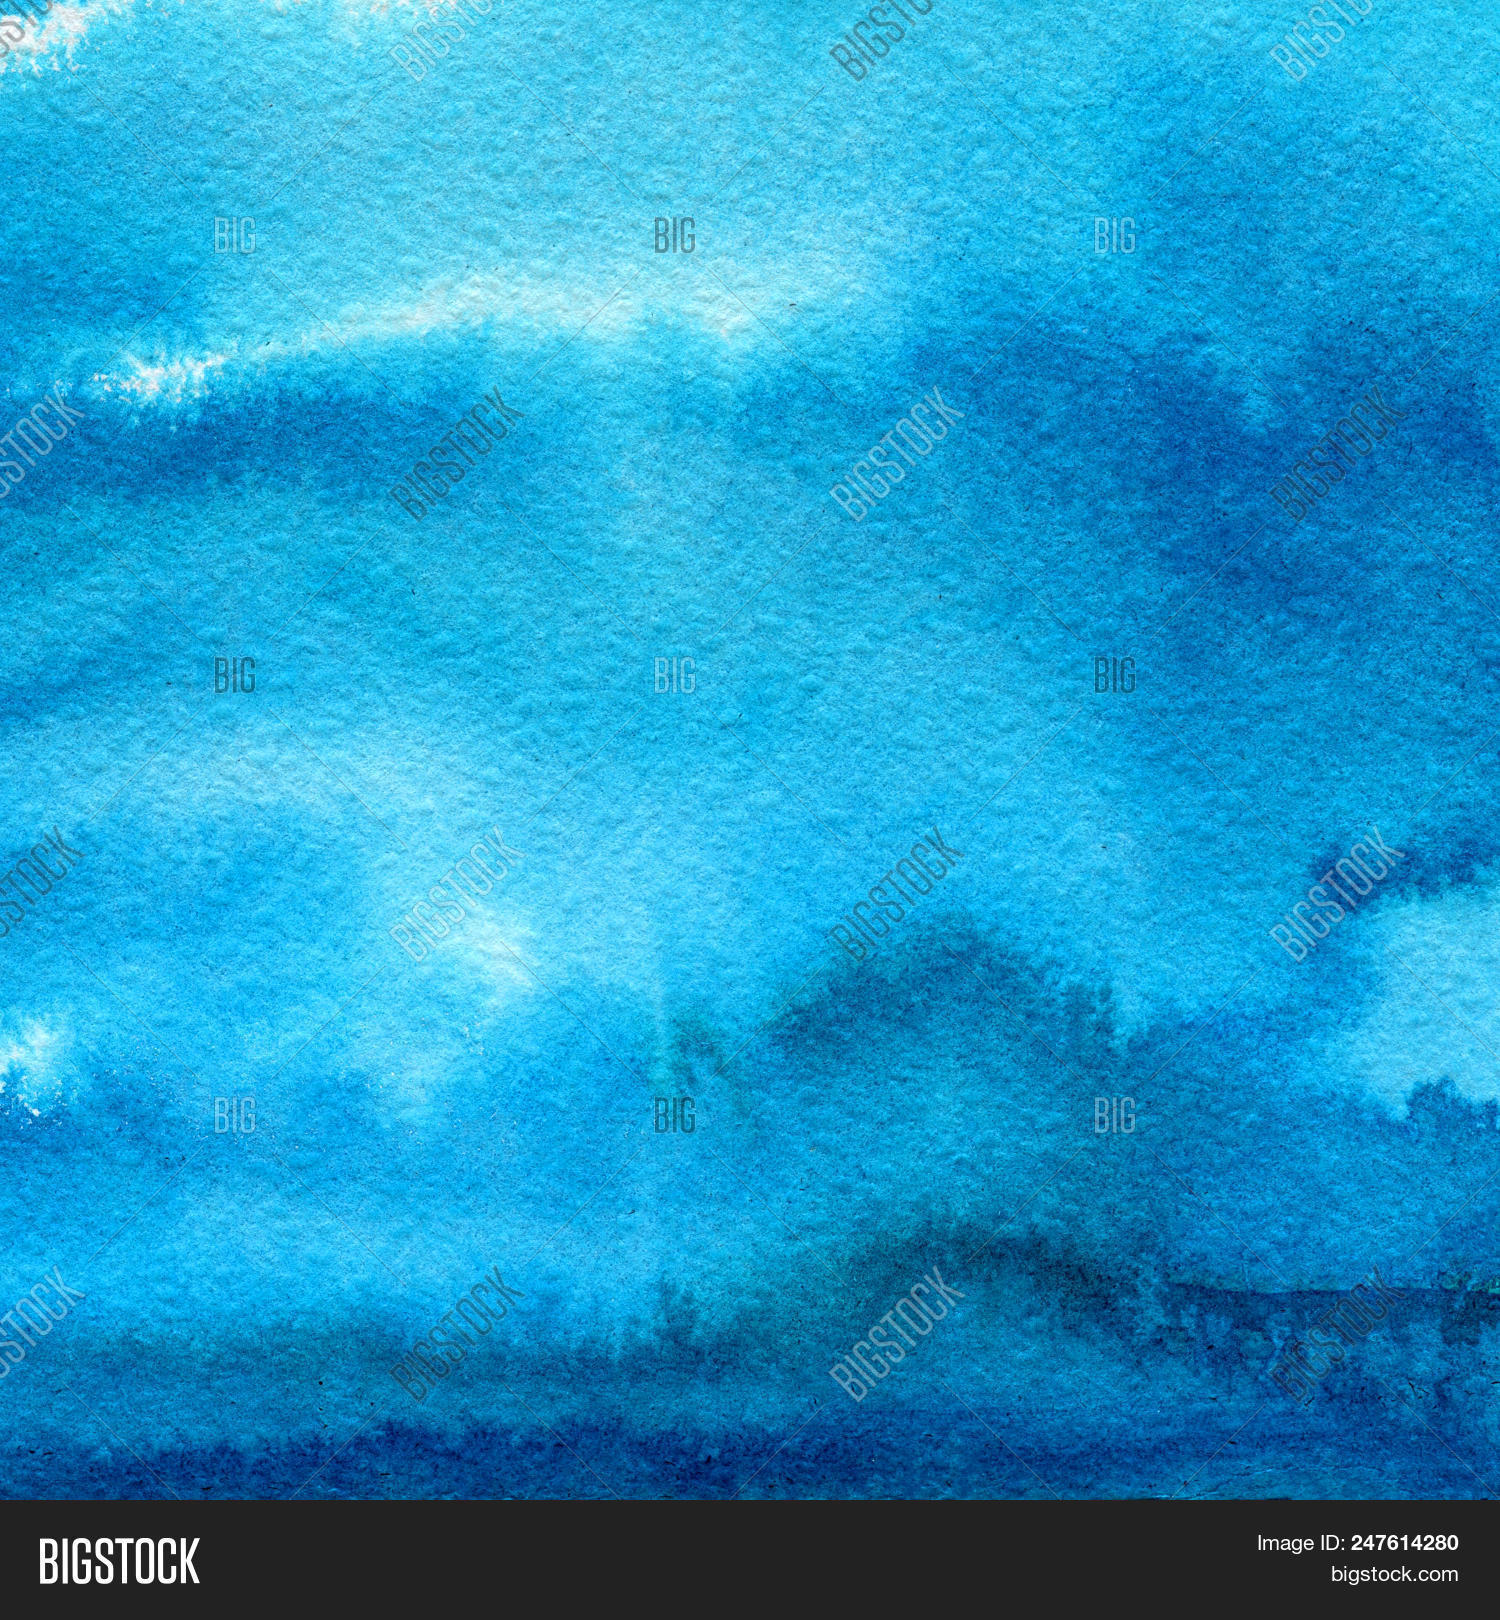 Unduh 6500 Background Blue Watercolor HD Terbaru